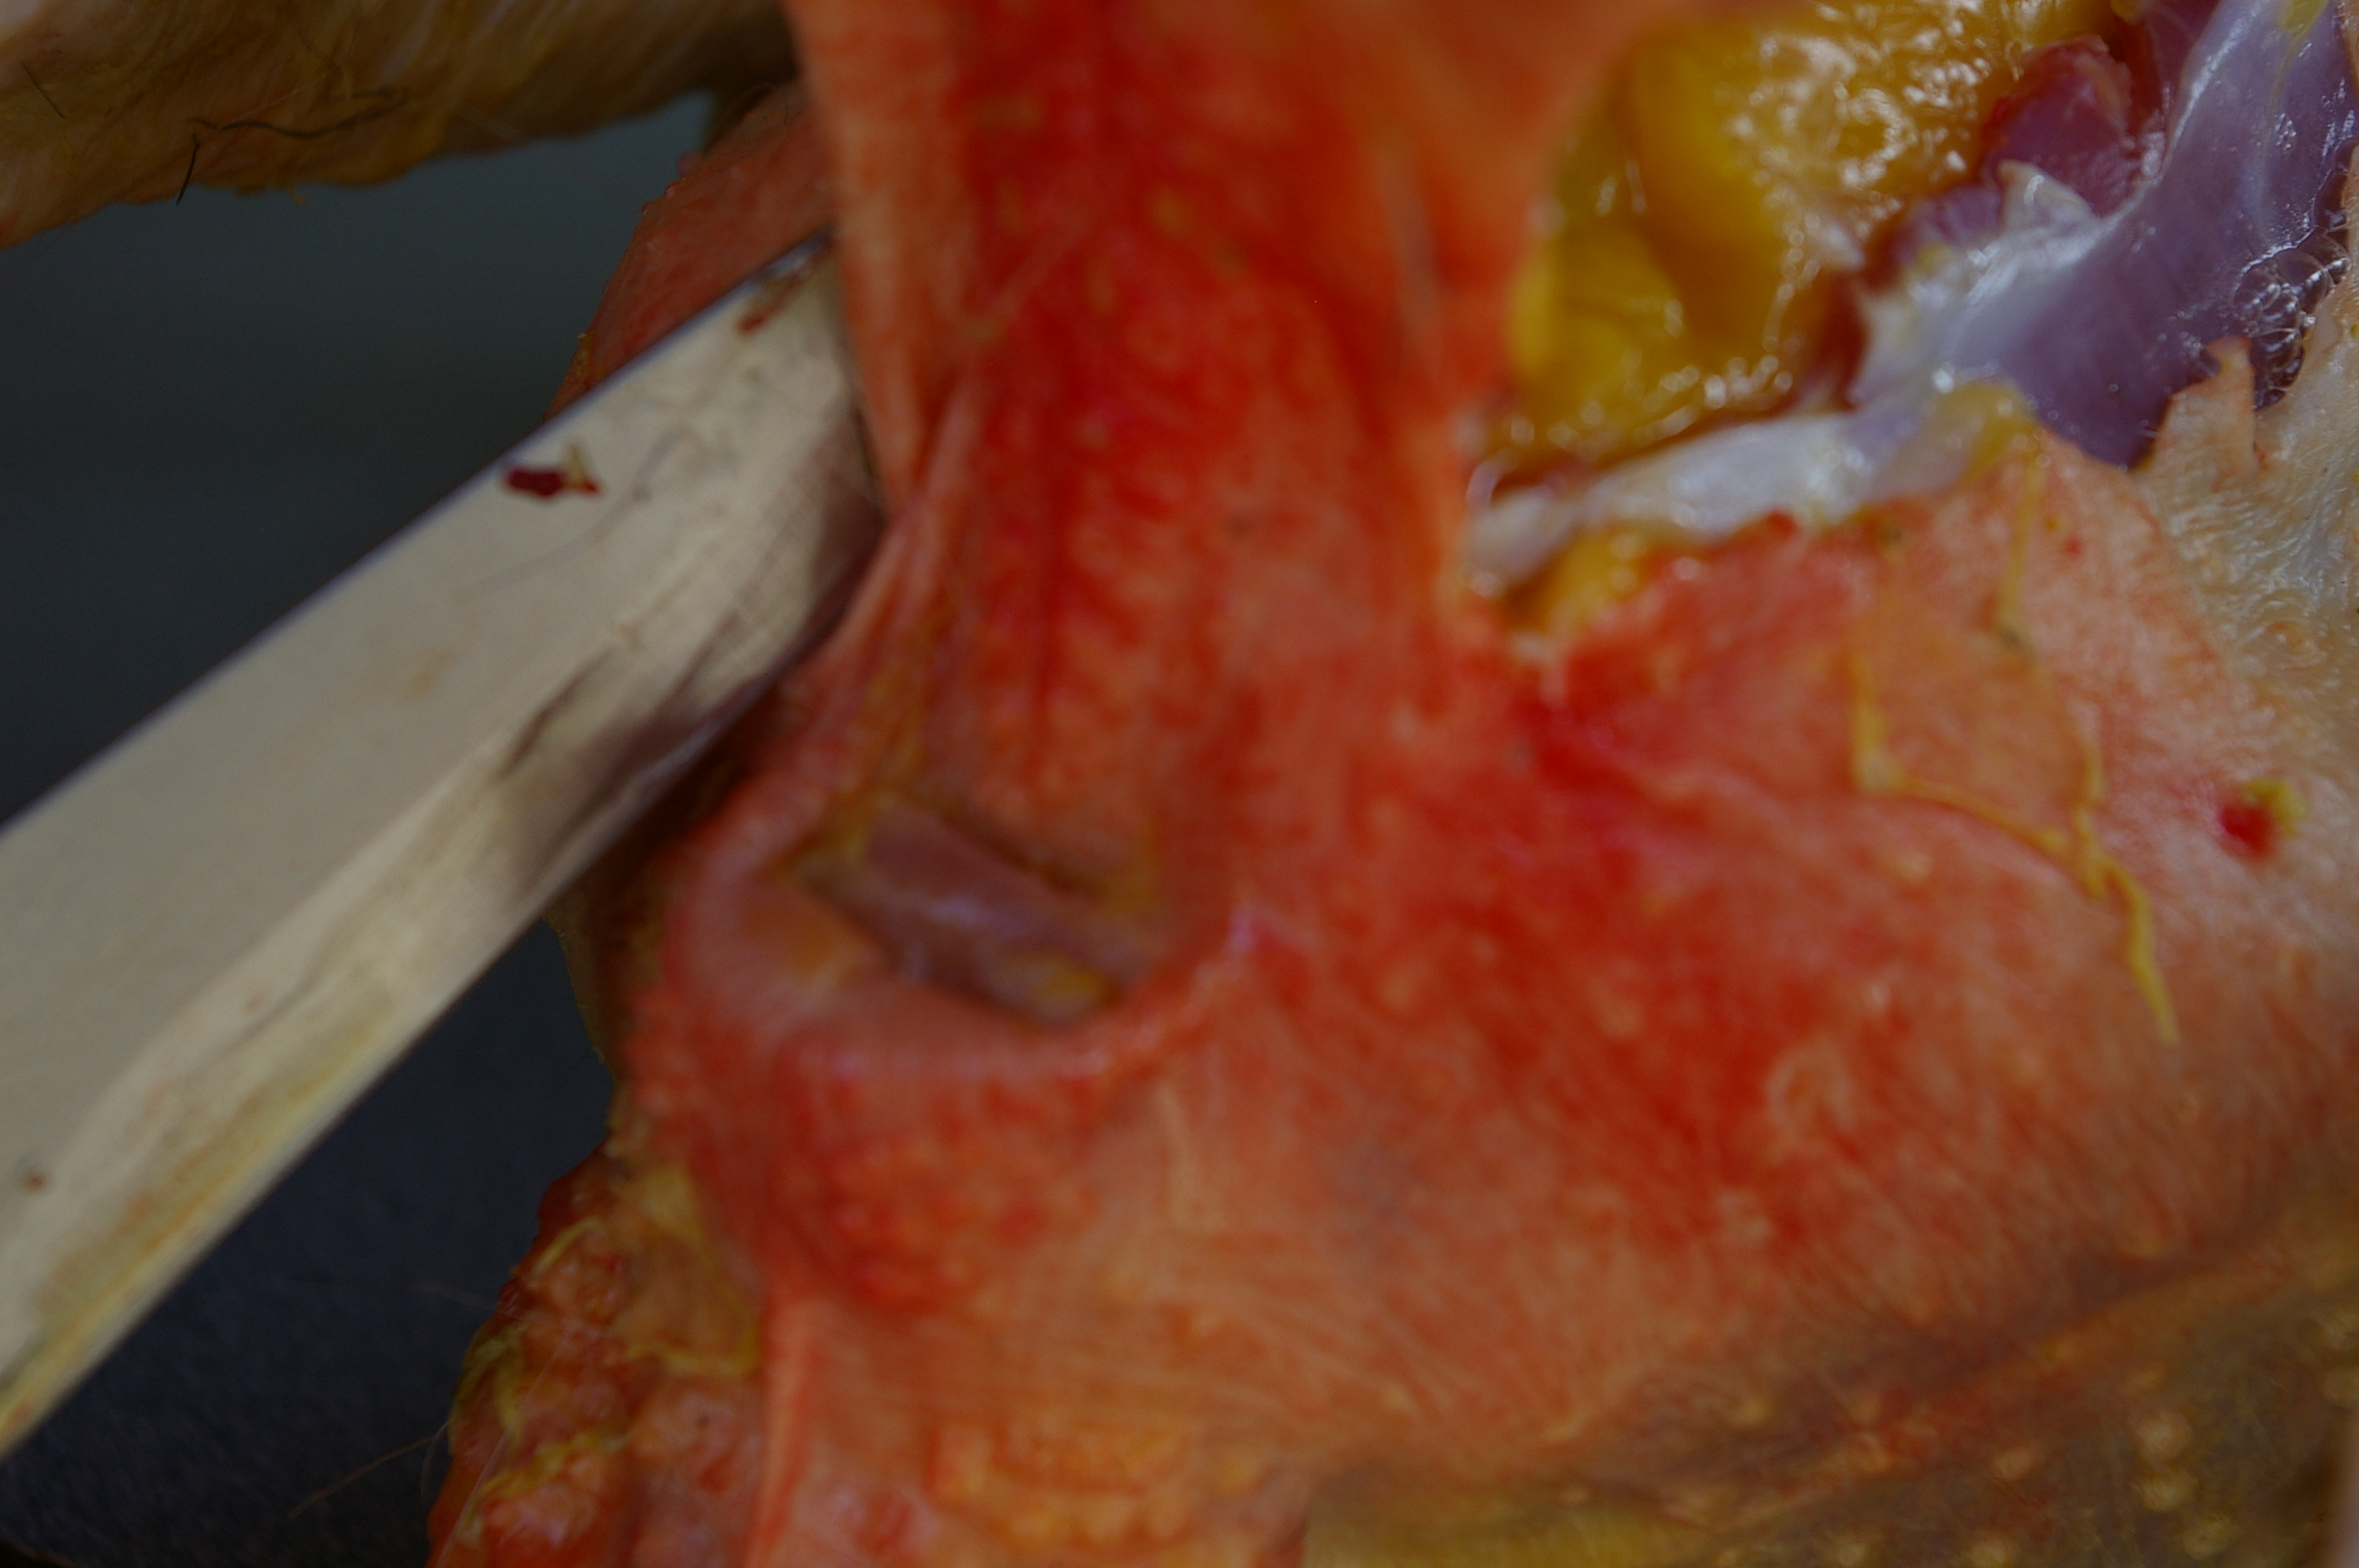 Cut towards the anus being careful not to cut through colon.